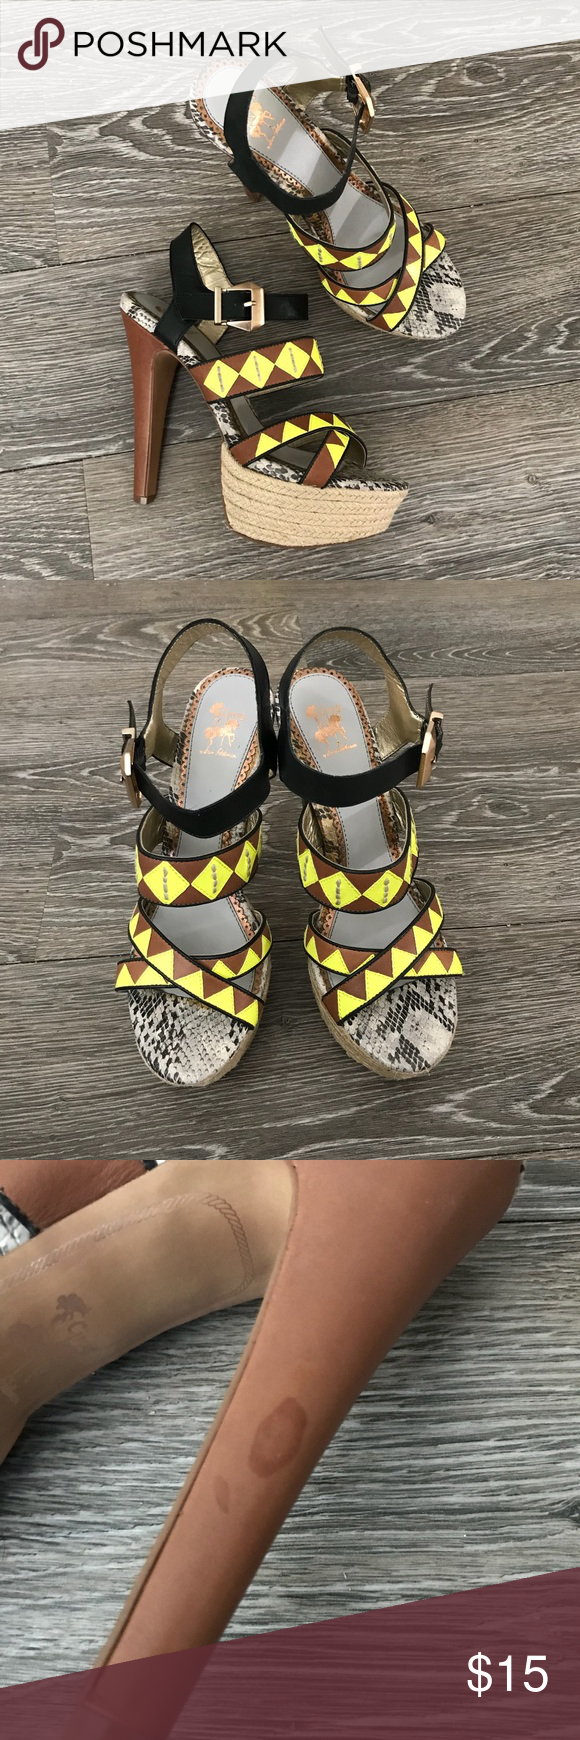 466a994c478f1e Circus by Sam Edelman Dawson Strappy Platform Circus by Sam Edelman Dawson  • Sz 8.5 • Multicolor with neon yellow detail • Snake skin pattern sole.